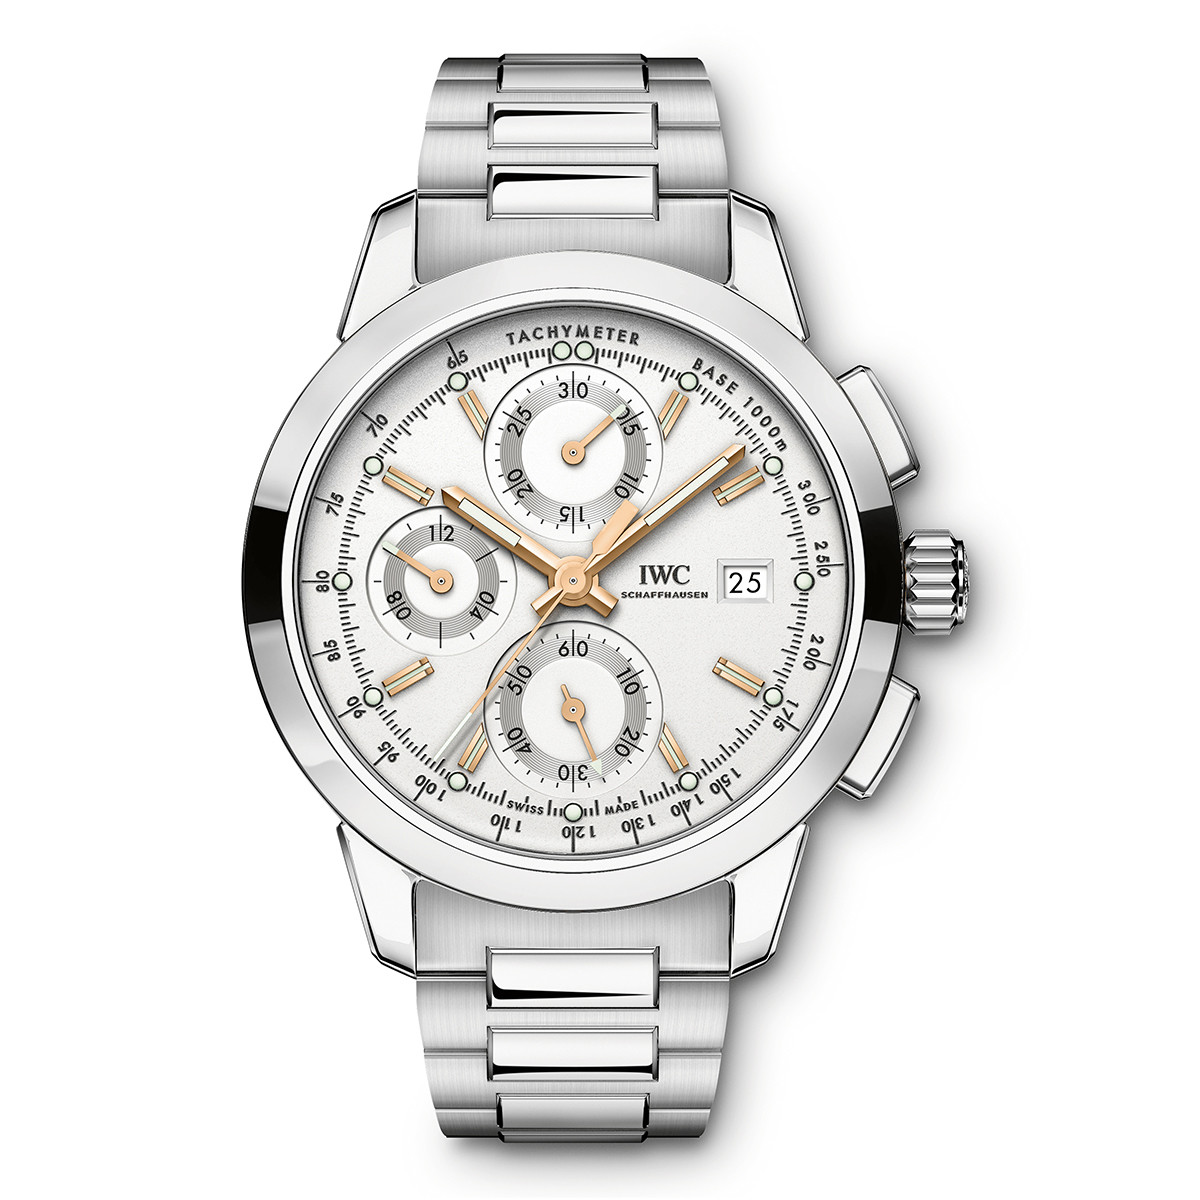 Ingenieur Chronograph Steel (IW380801)